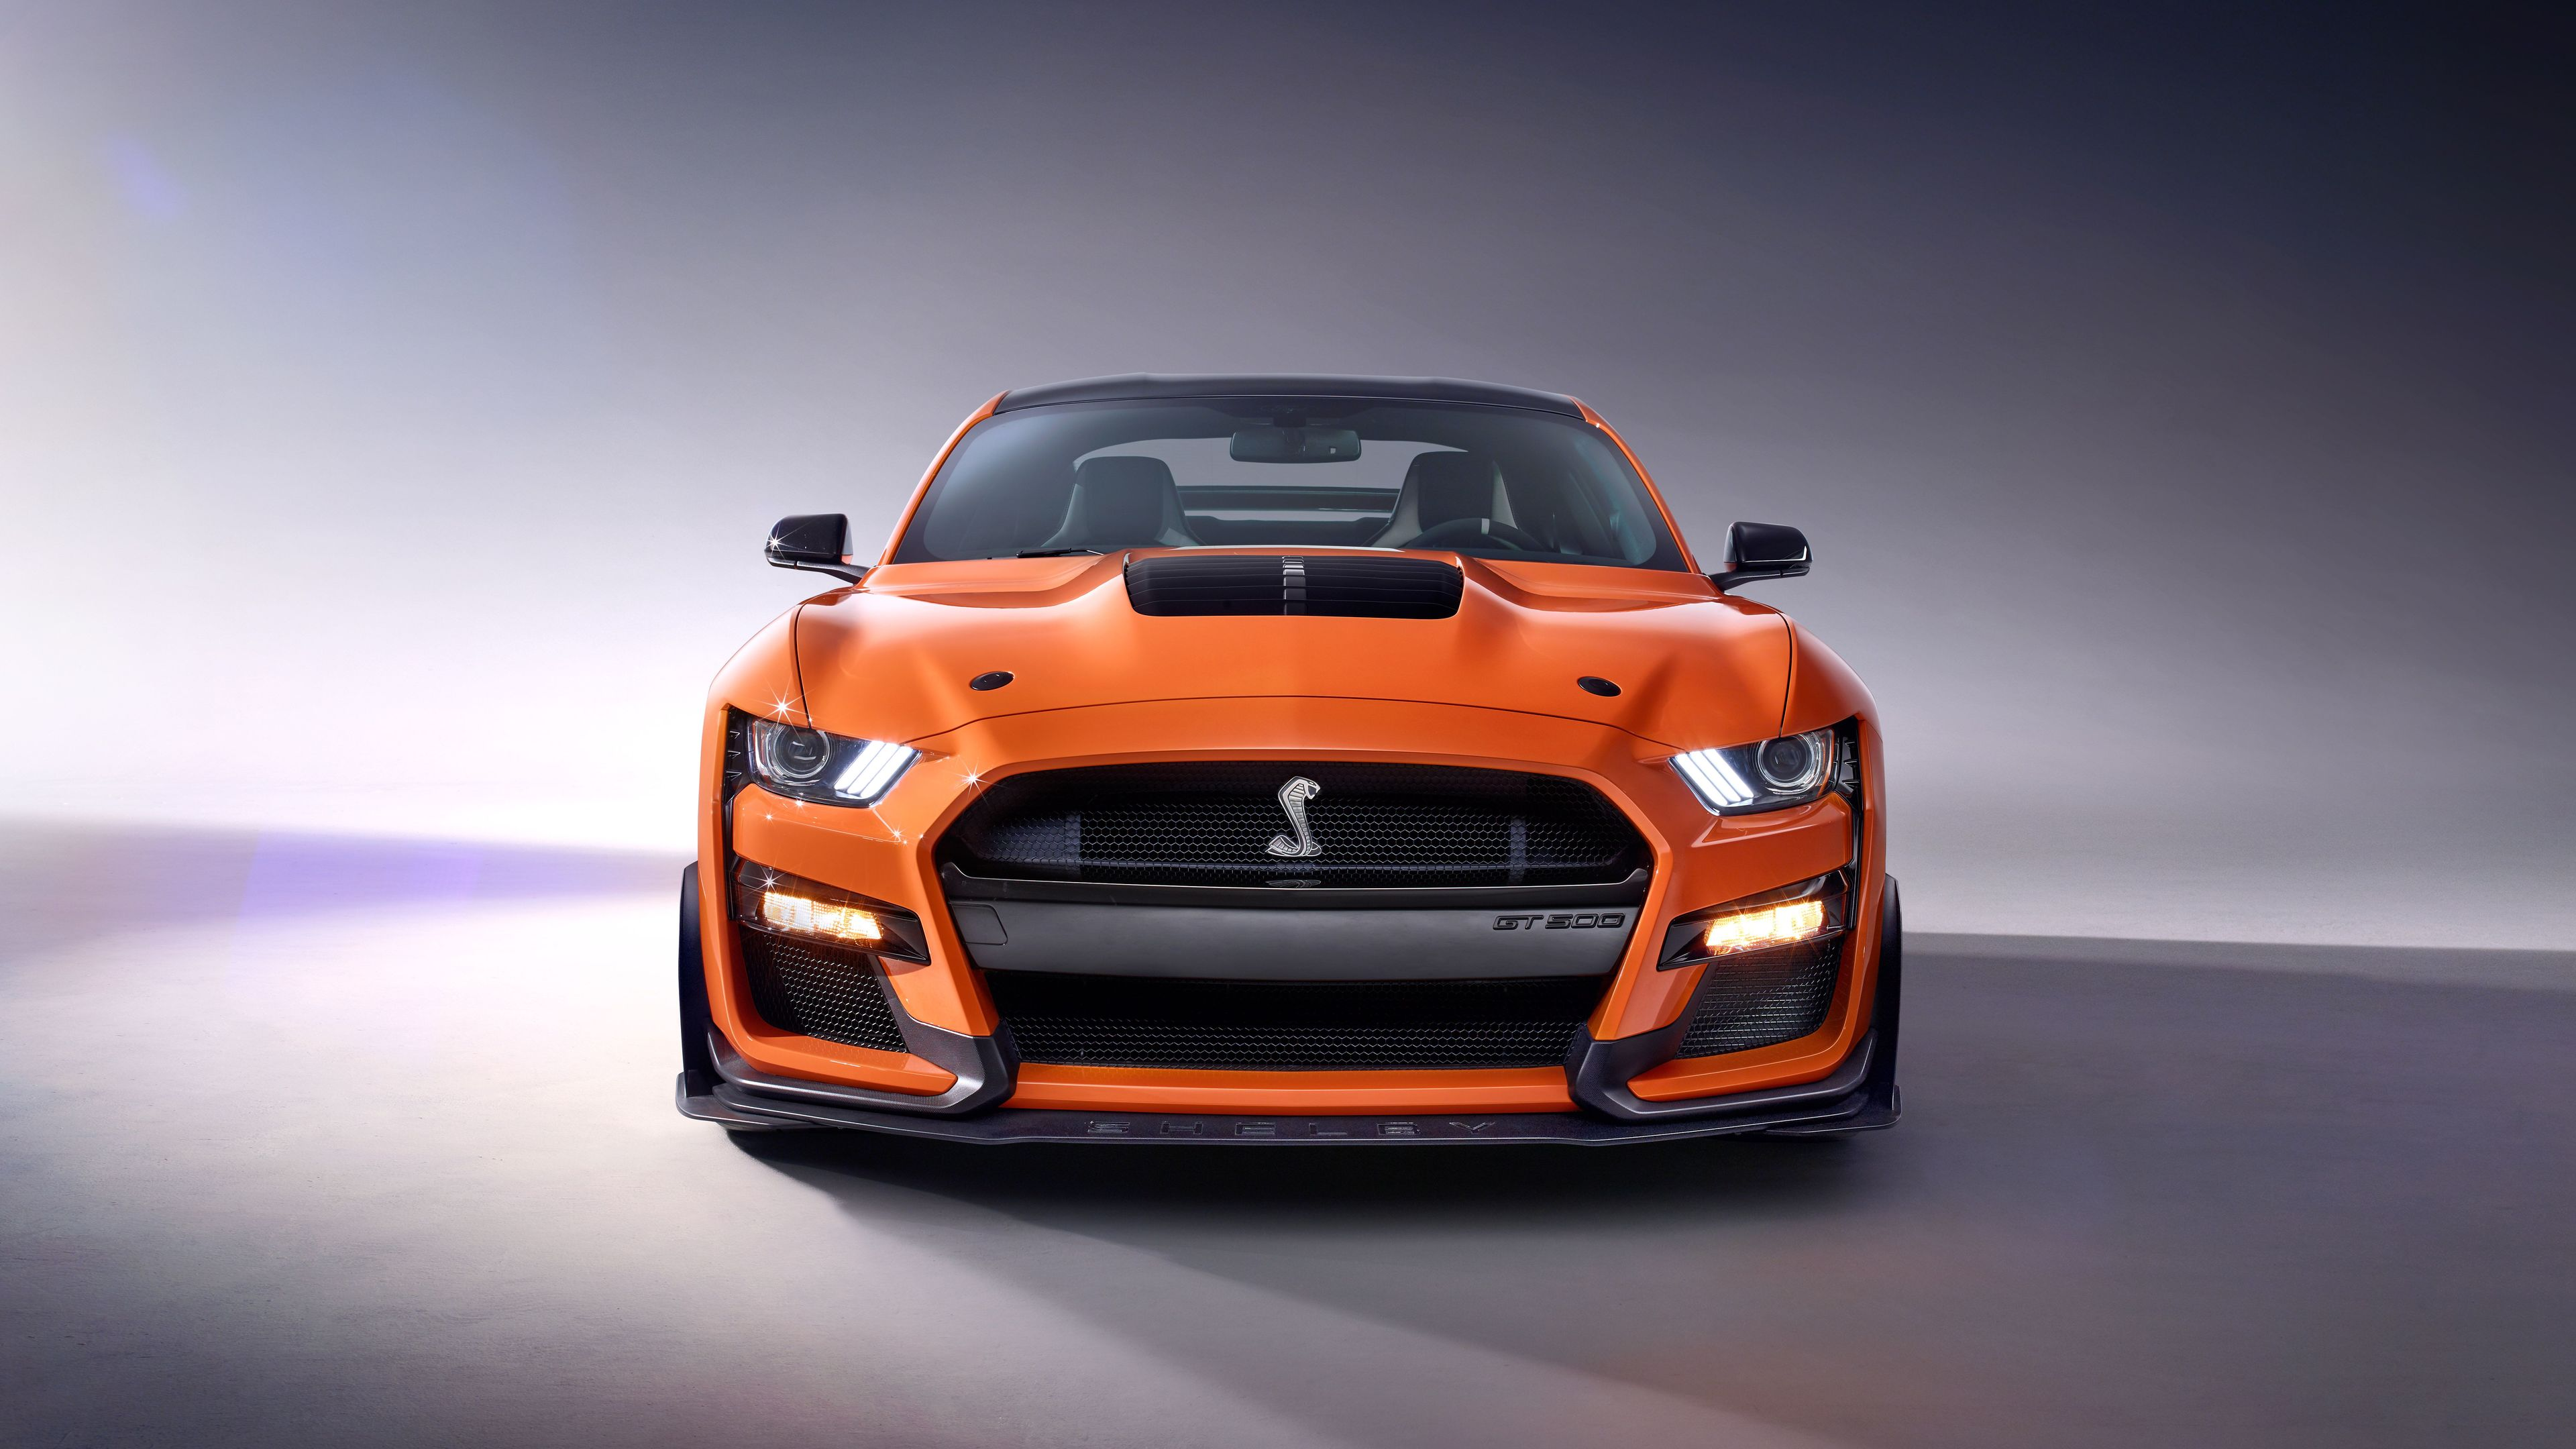 2020 ford mustang shelby gt500 front 4k 1554245141 - 2020 Ford Mustang Shelby GT500 Front 4k - mustang wallpapers, hd-wallpapers, ford mustang wallpapers, cars wallpapers, 5k wallpapers, 4k-wallpapers, 2020 cars wallpapers